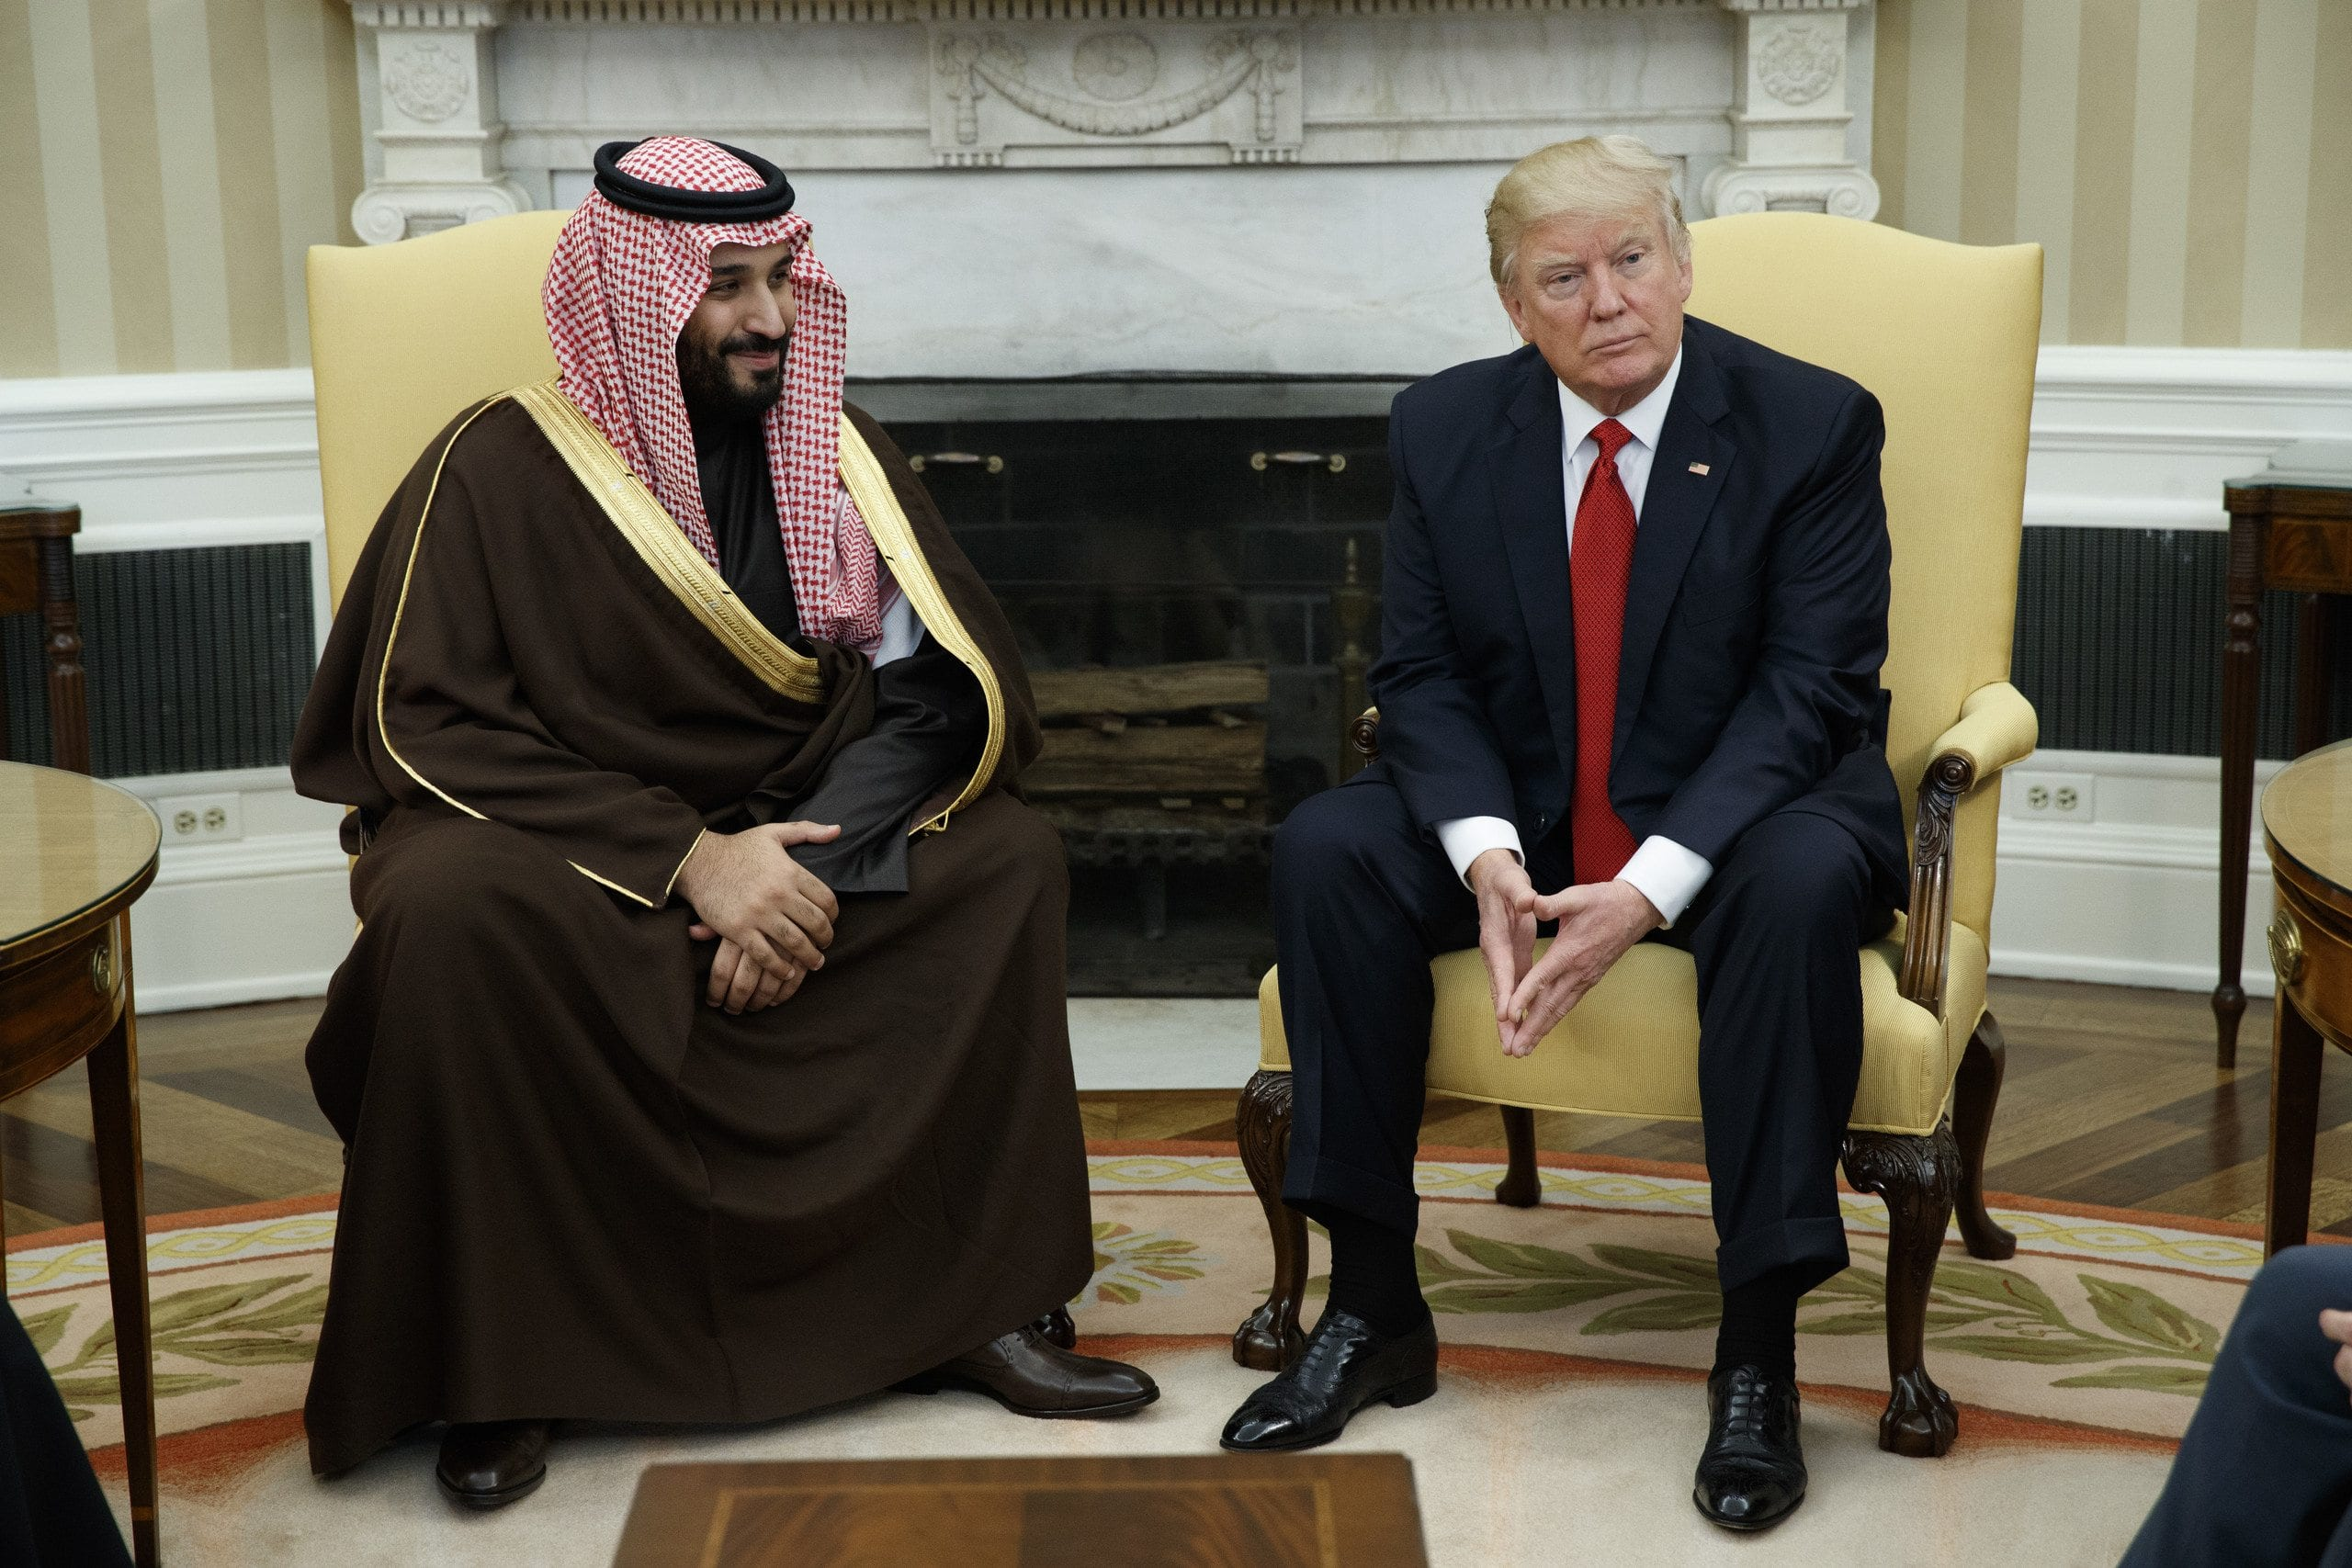 Image President Donald Trump meets with Saudi Defense Minister and Deputy Crown Prince Mohammed bin Salman bin Abdulaziz Al Saud in the Oval Office of the White House in Washington, Tuesday, March 14, 2017. (AP Photo/Evan Vucci)